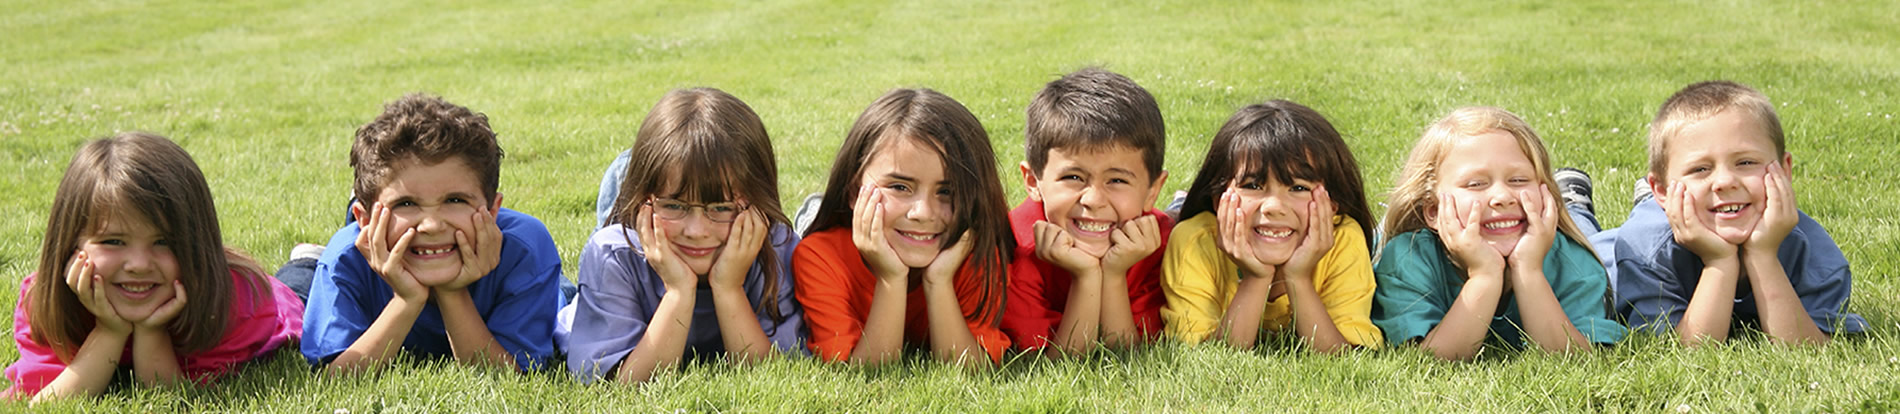 group of kids in the grass